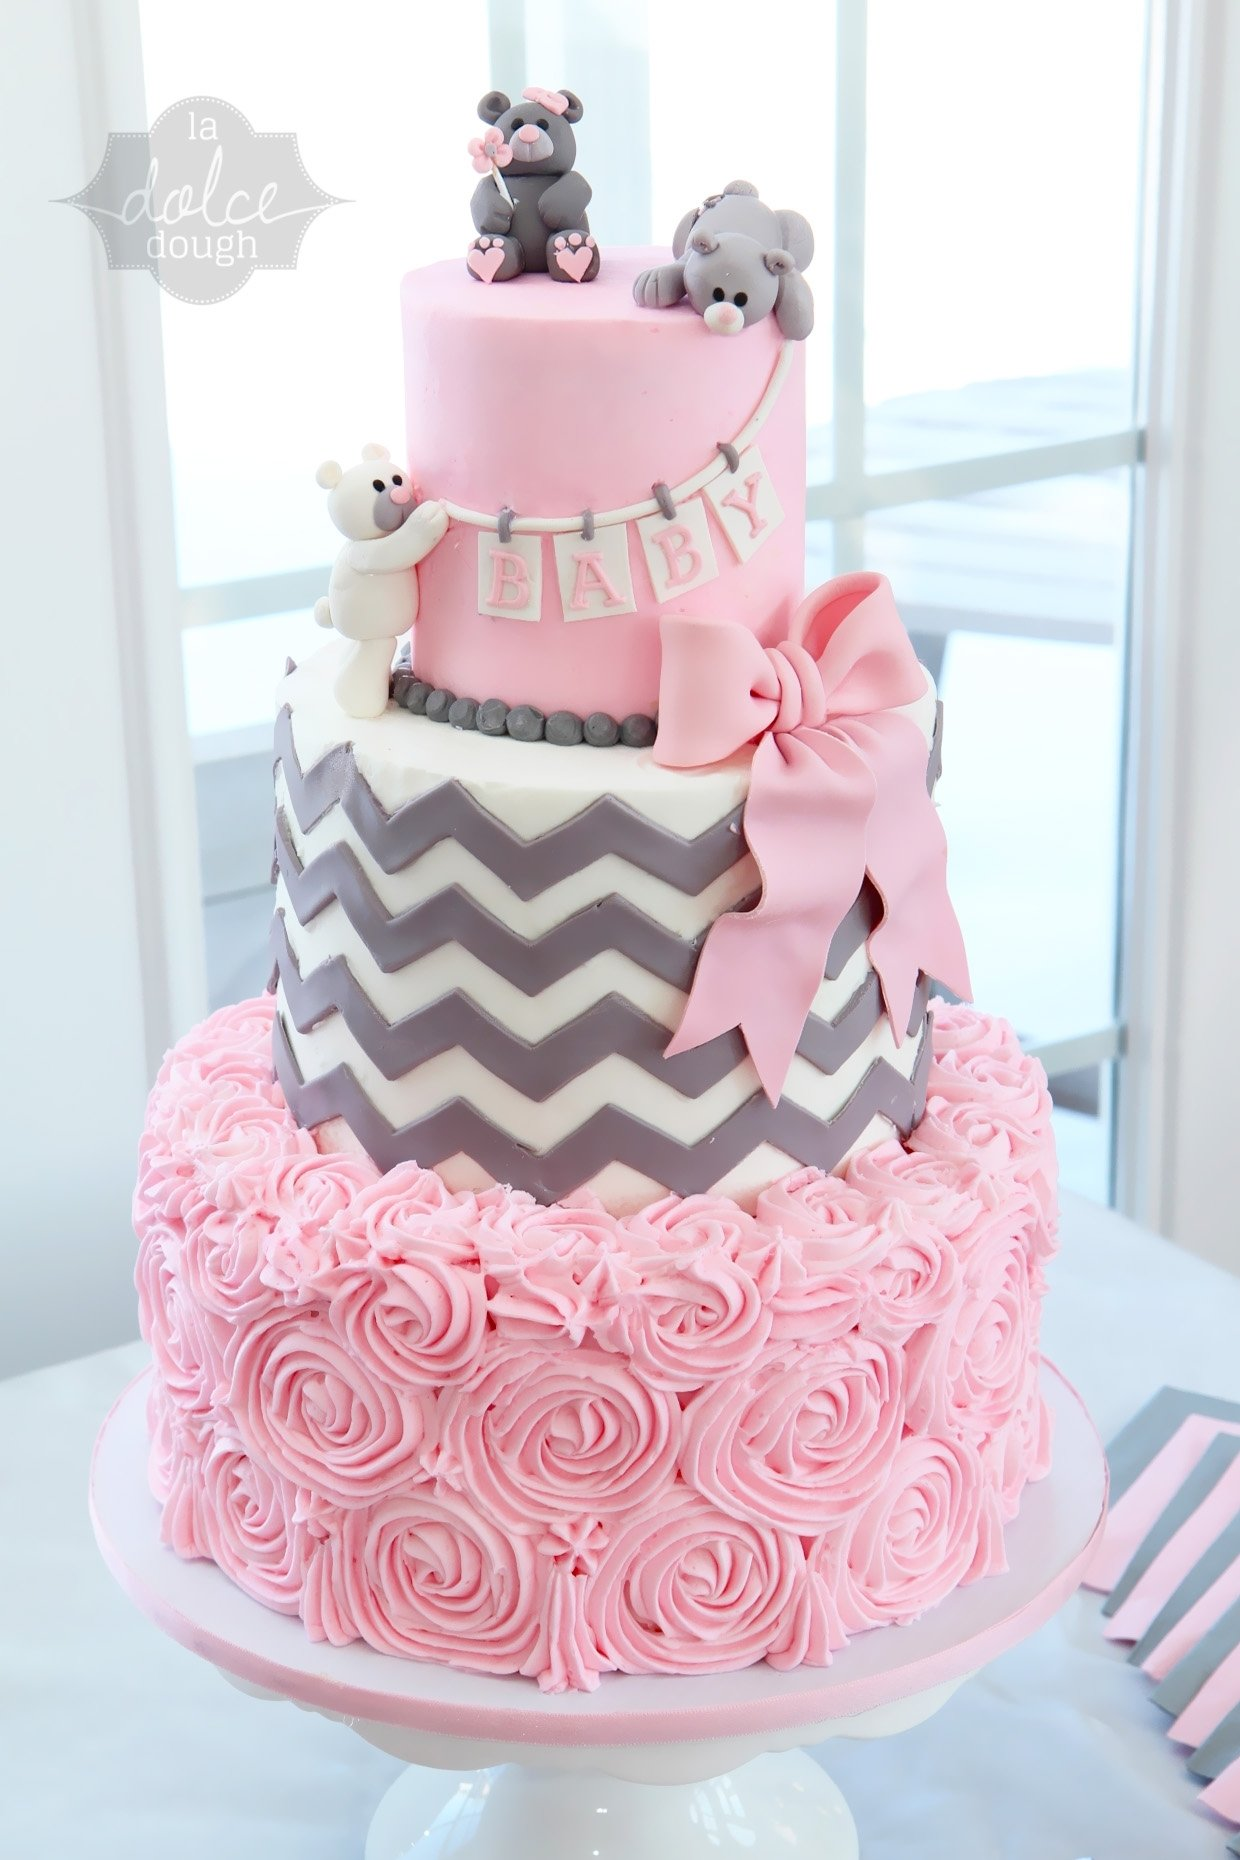 10 Wonderful Ideas For Baby Shower Cakes gorgeous baby shower cakes stay at home mum 2 2020